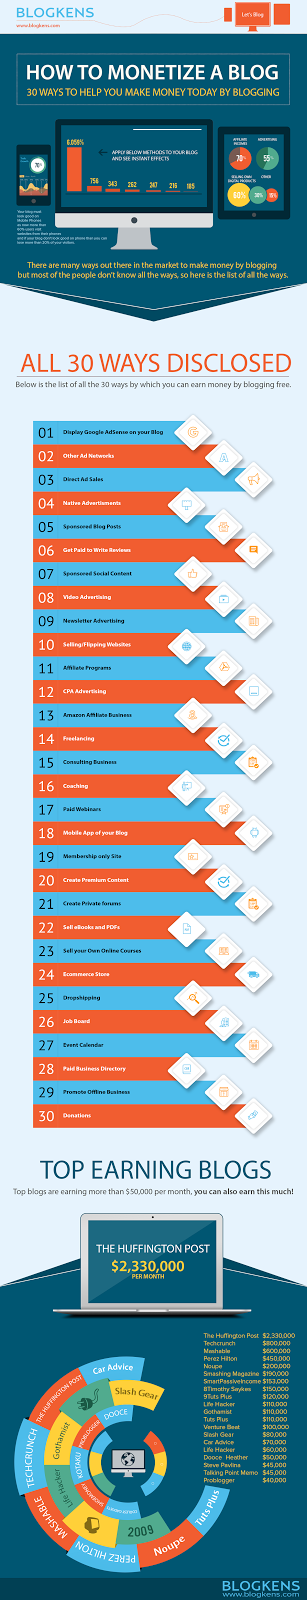 How To Monetize a Blog: 30 Ways To Help You Make Money Today By Blogging #Infographic